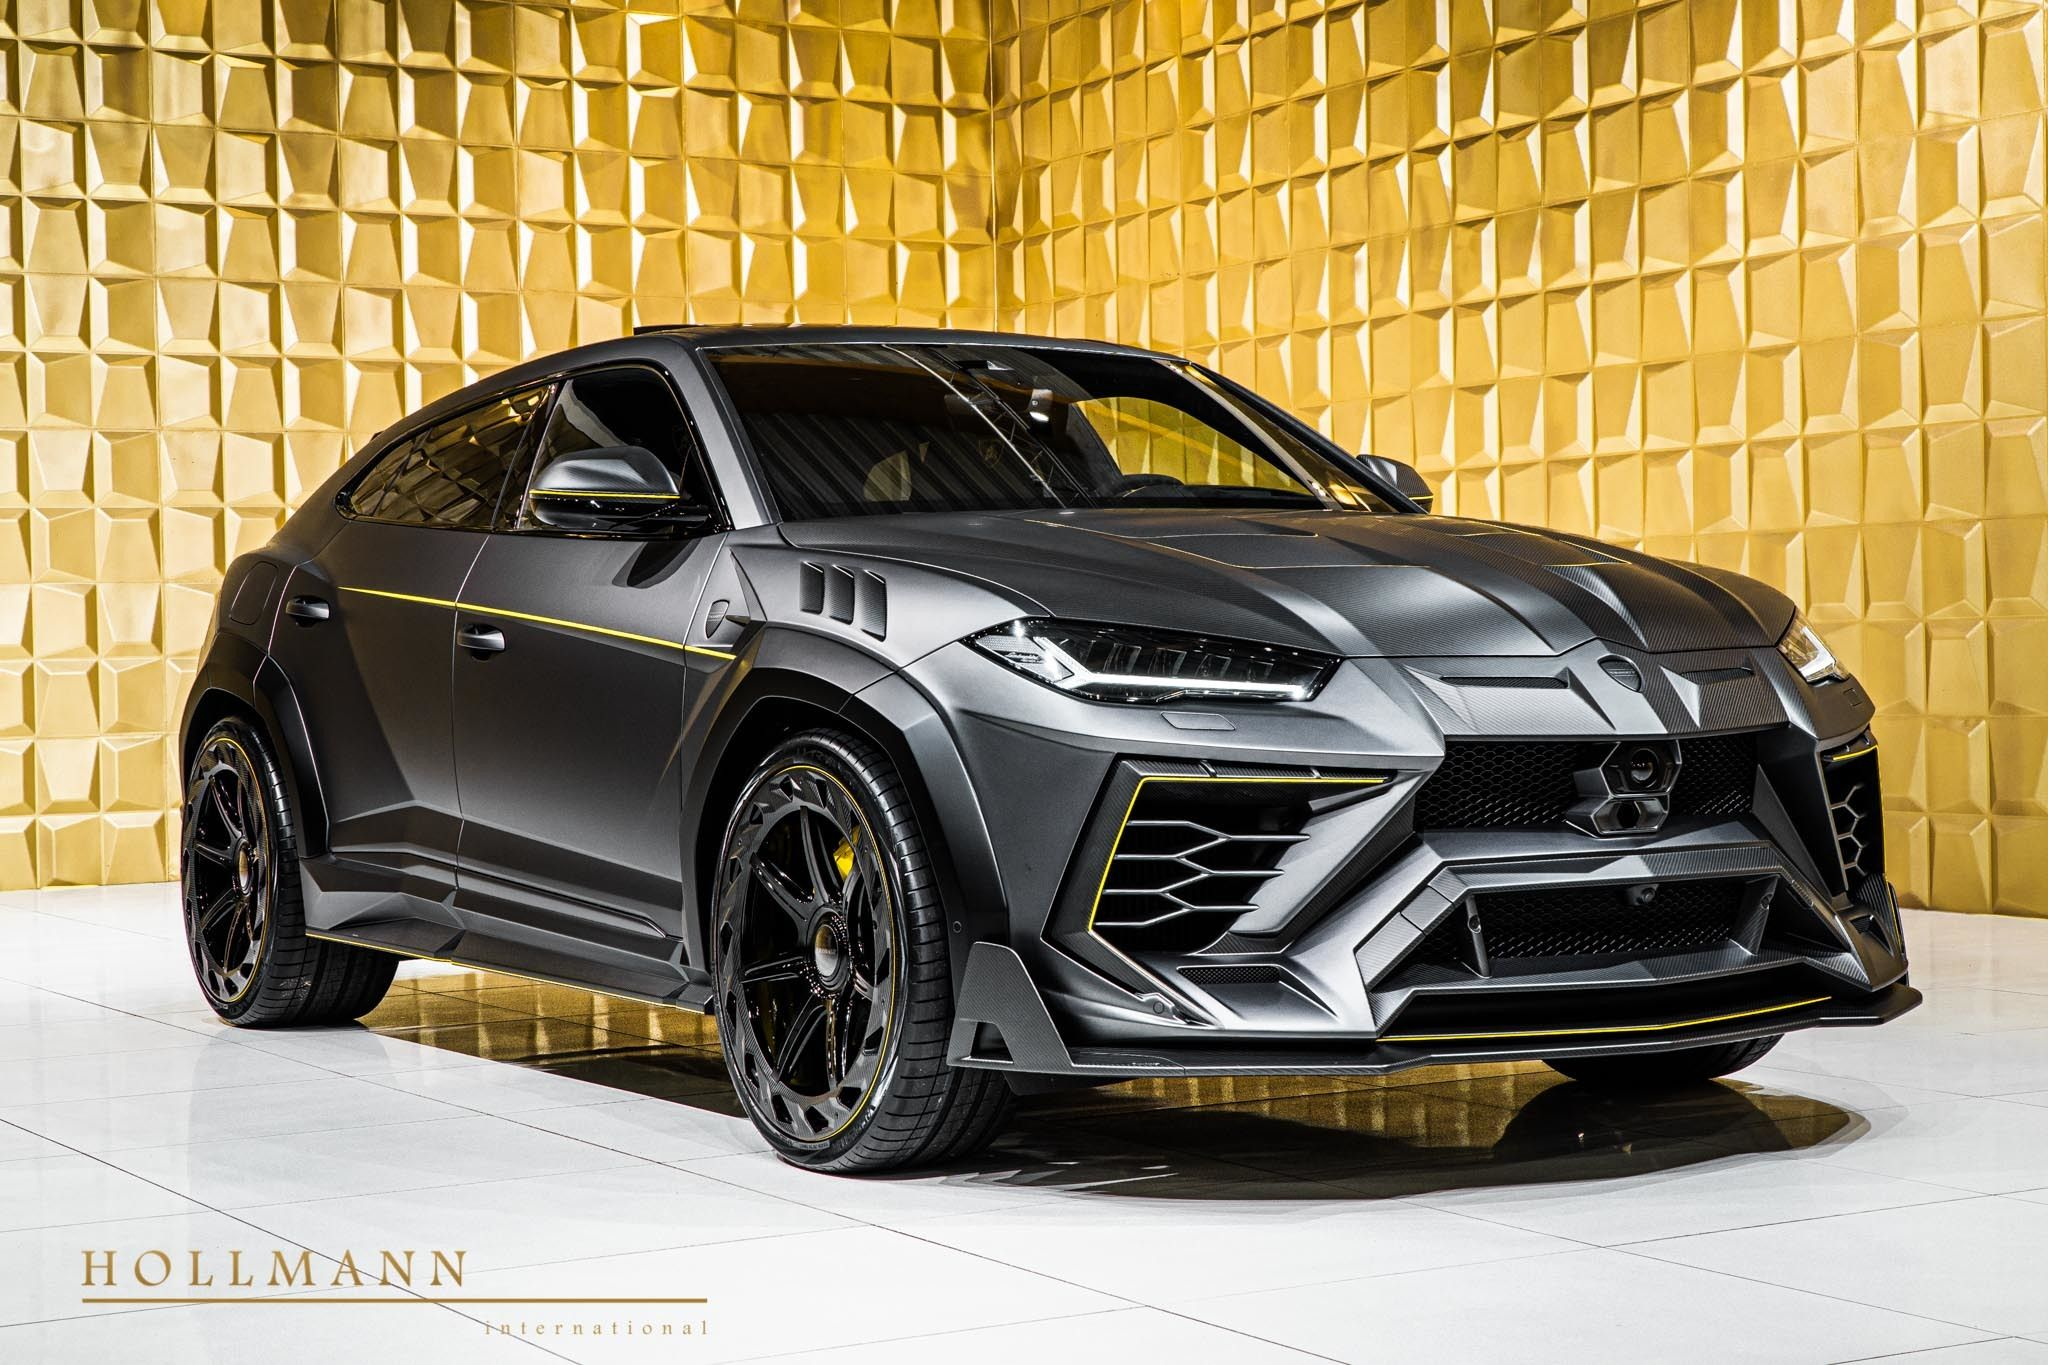 Lamborghini Urus By Mansory Hollmann International Germany For Sale On Luxurypulse In 2020 Lamborghini Range Rover Sport Luxury Suv